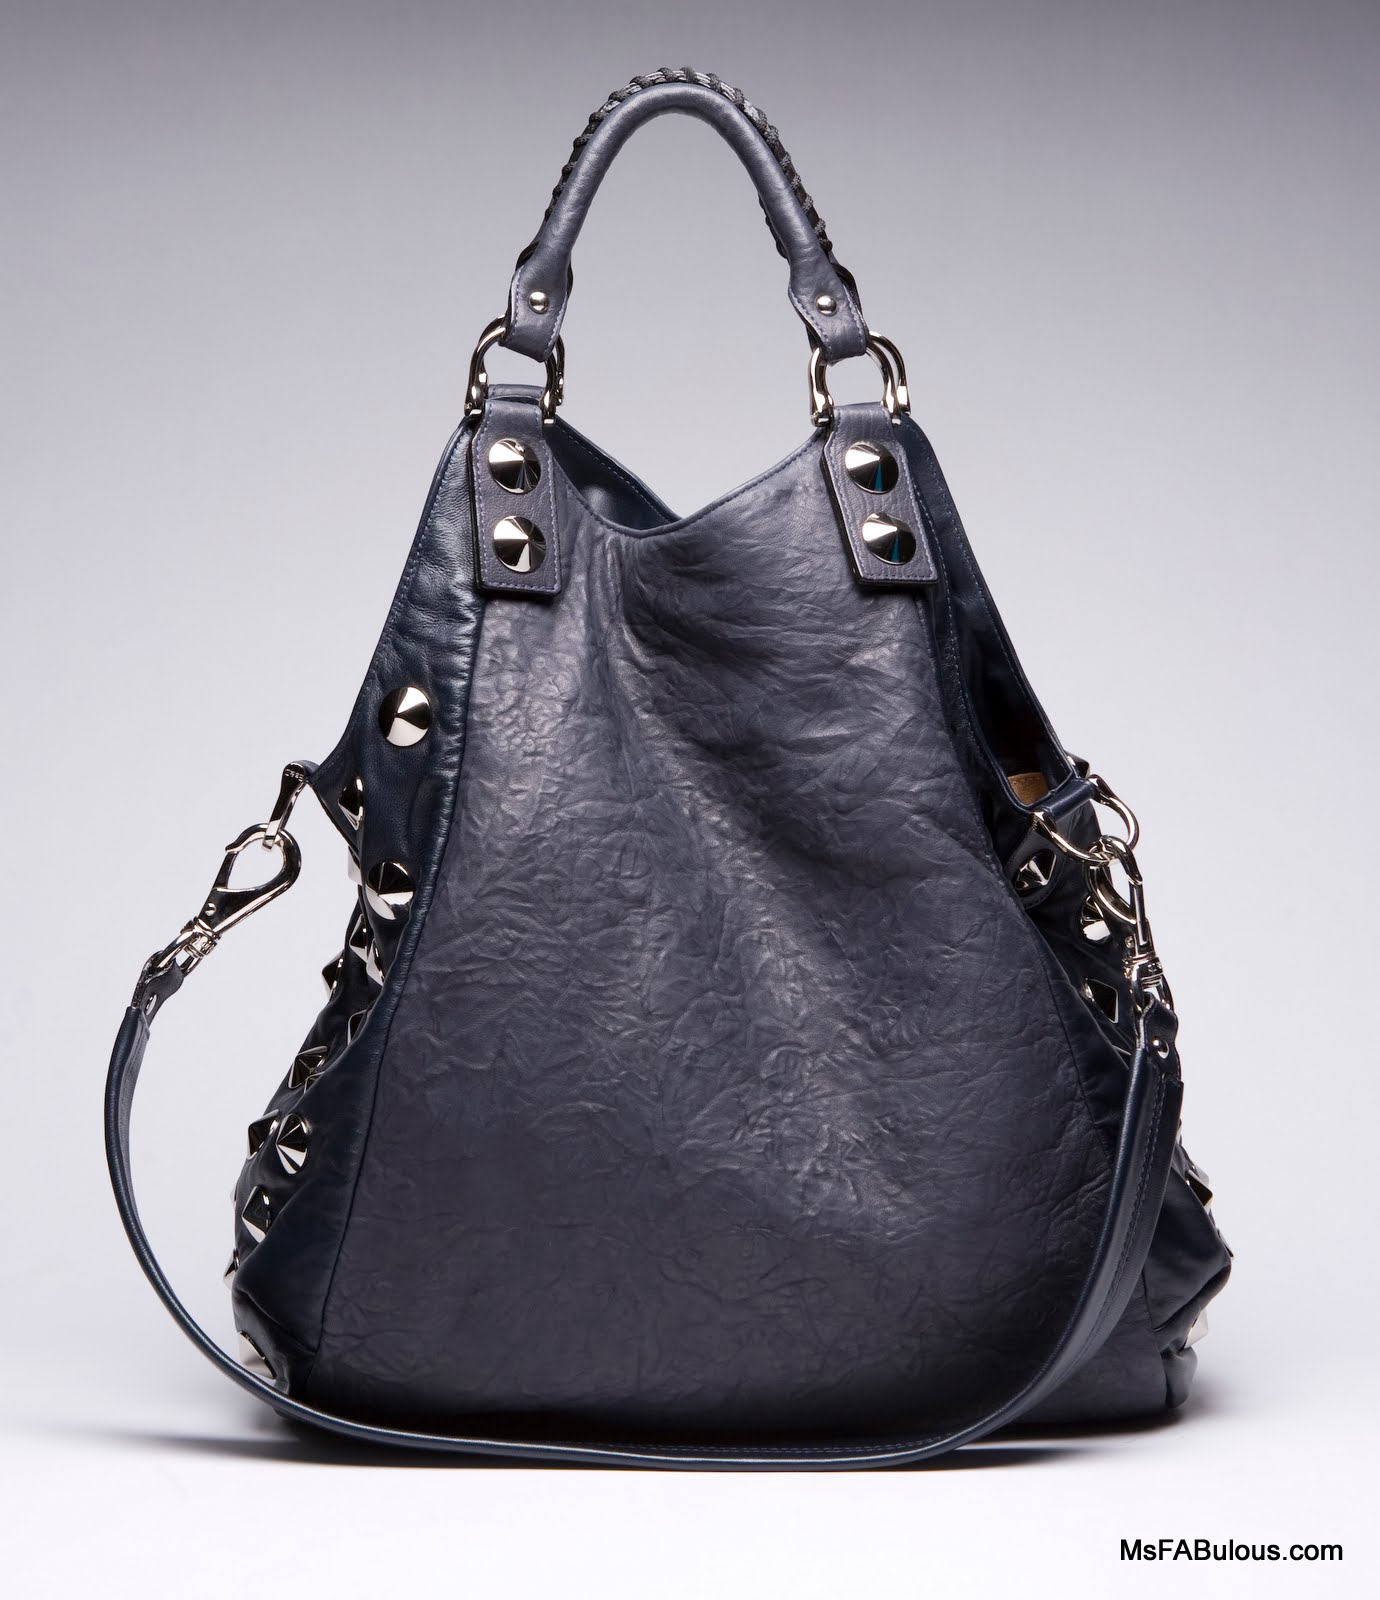 Designer Used Clothing And Handbags Botkier Designer Handbag Sample Sales